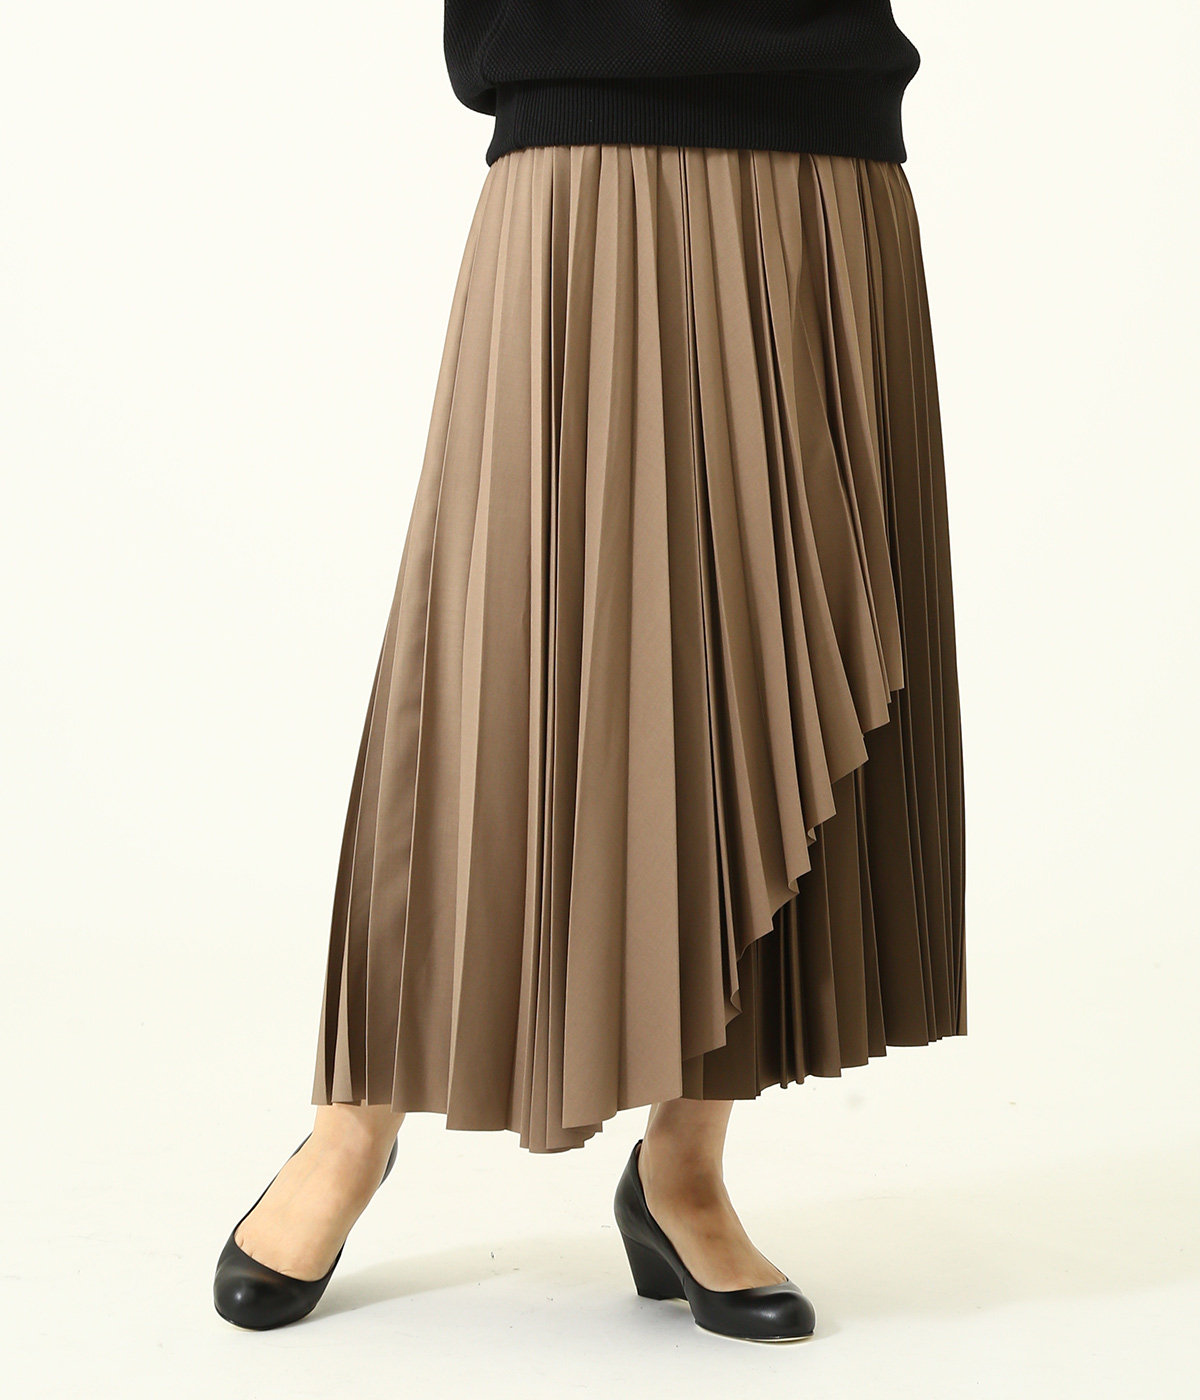 【レディース】OVERWRAP PLEAT SKIRT